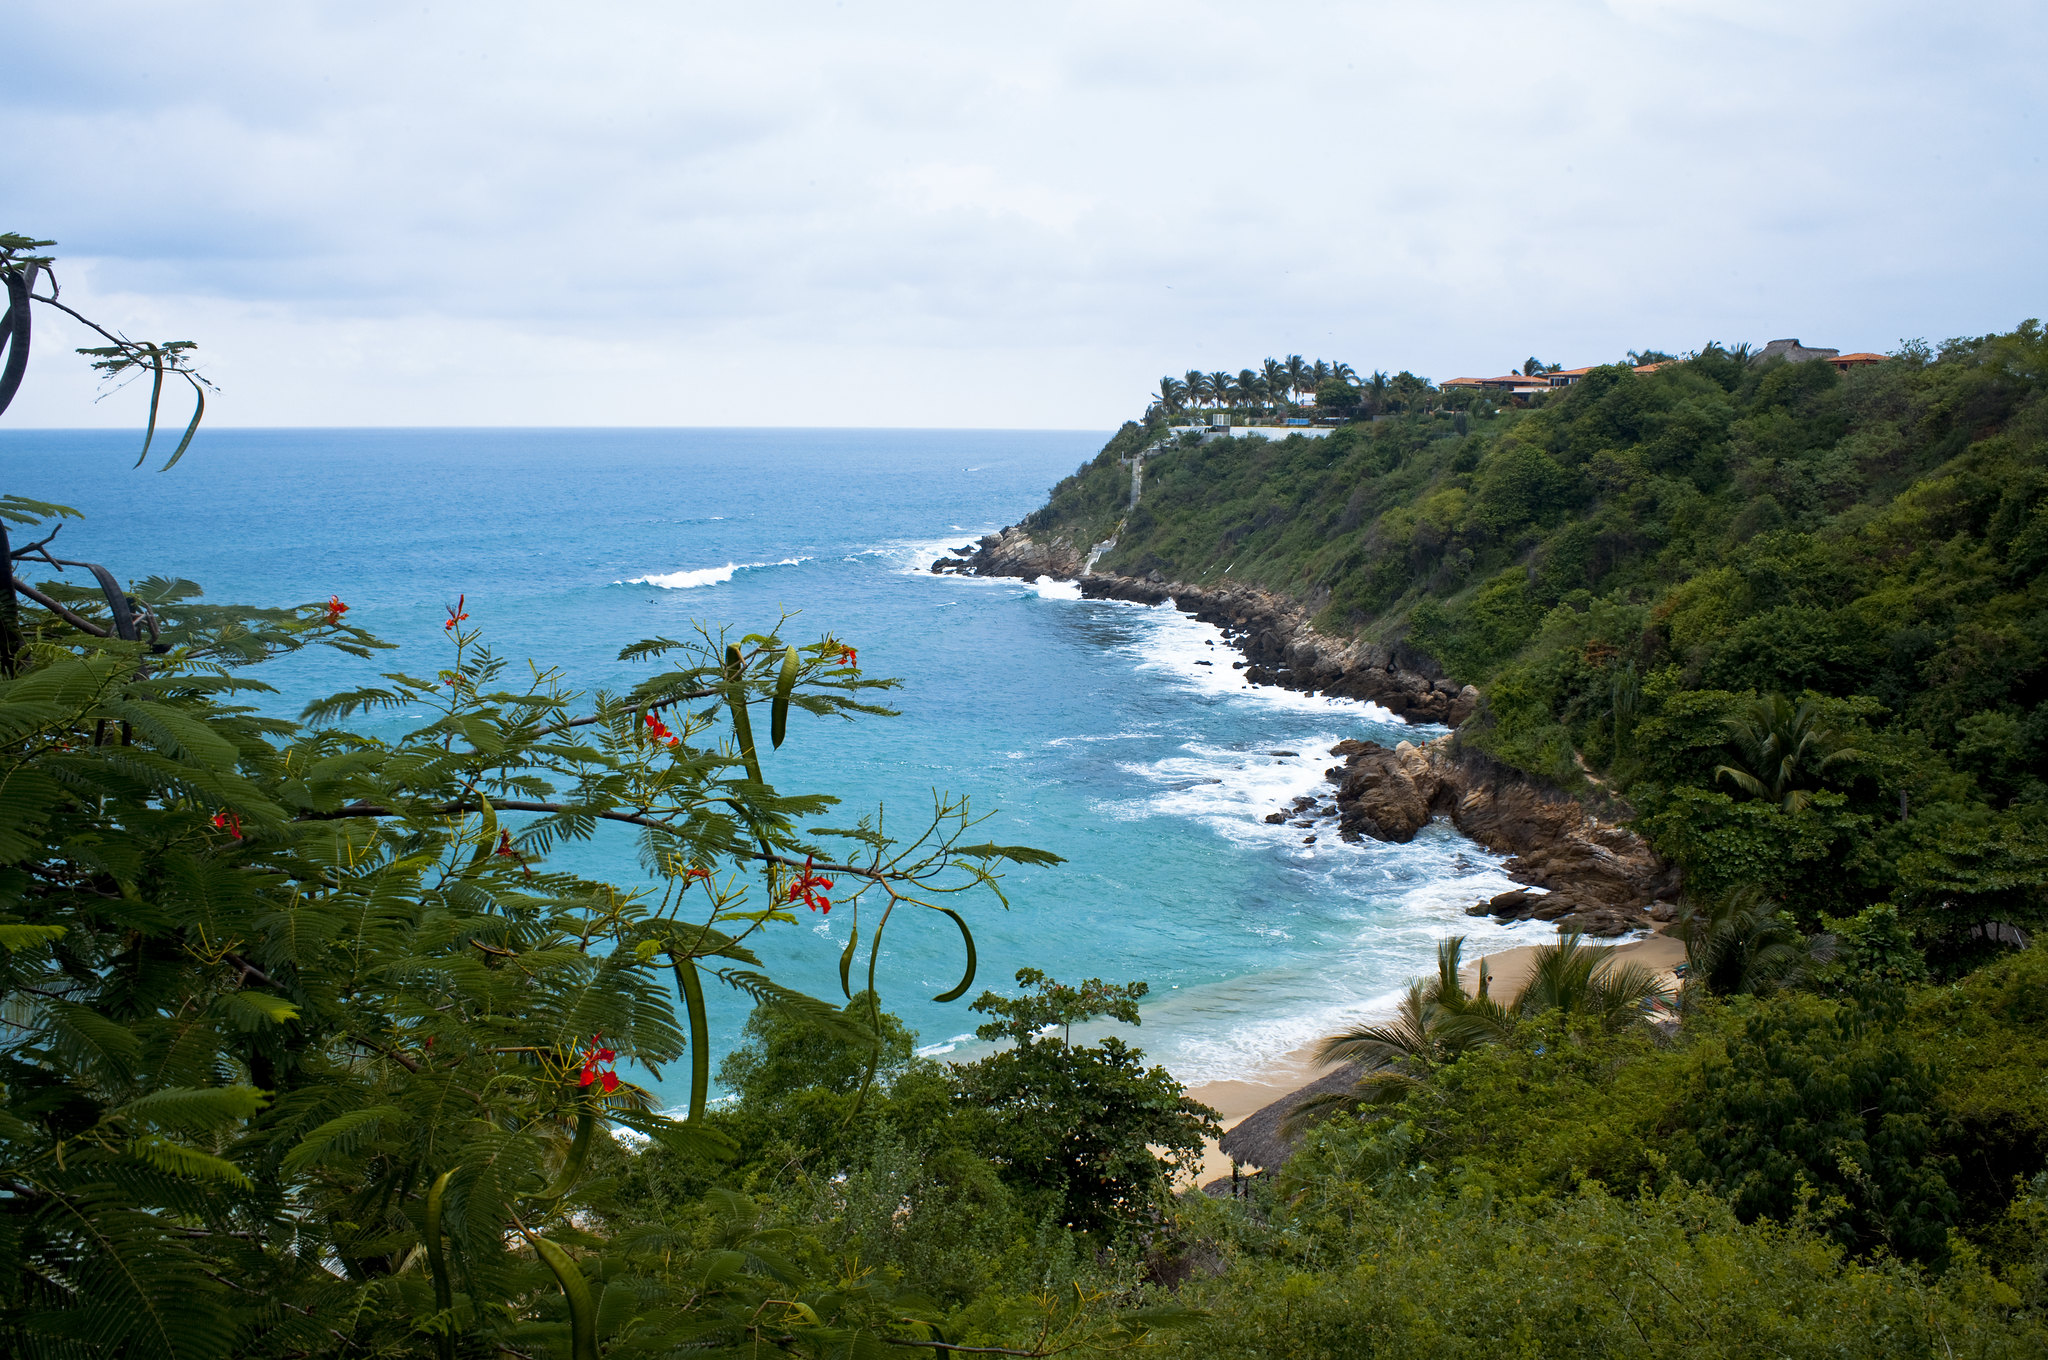 10 Best Things To Do in Puerto Escondido, Mexico [with Suggested Tours]